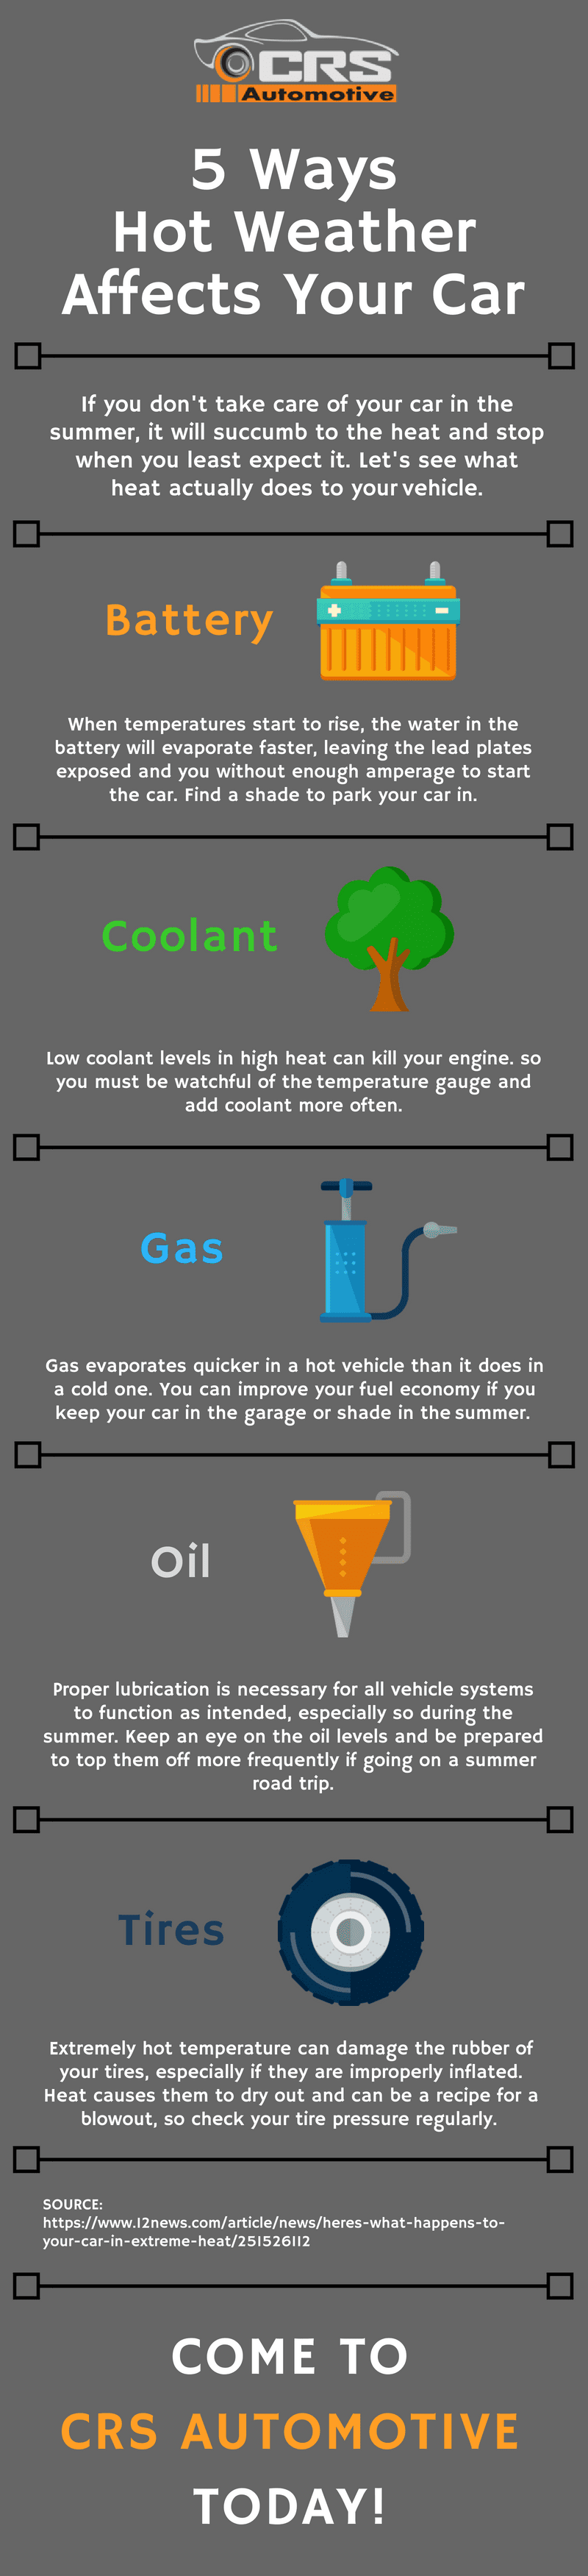 5 Ways Hot Weather Affects Your Car-INFOGRAPHIC